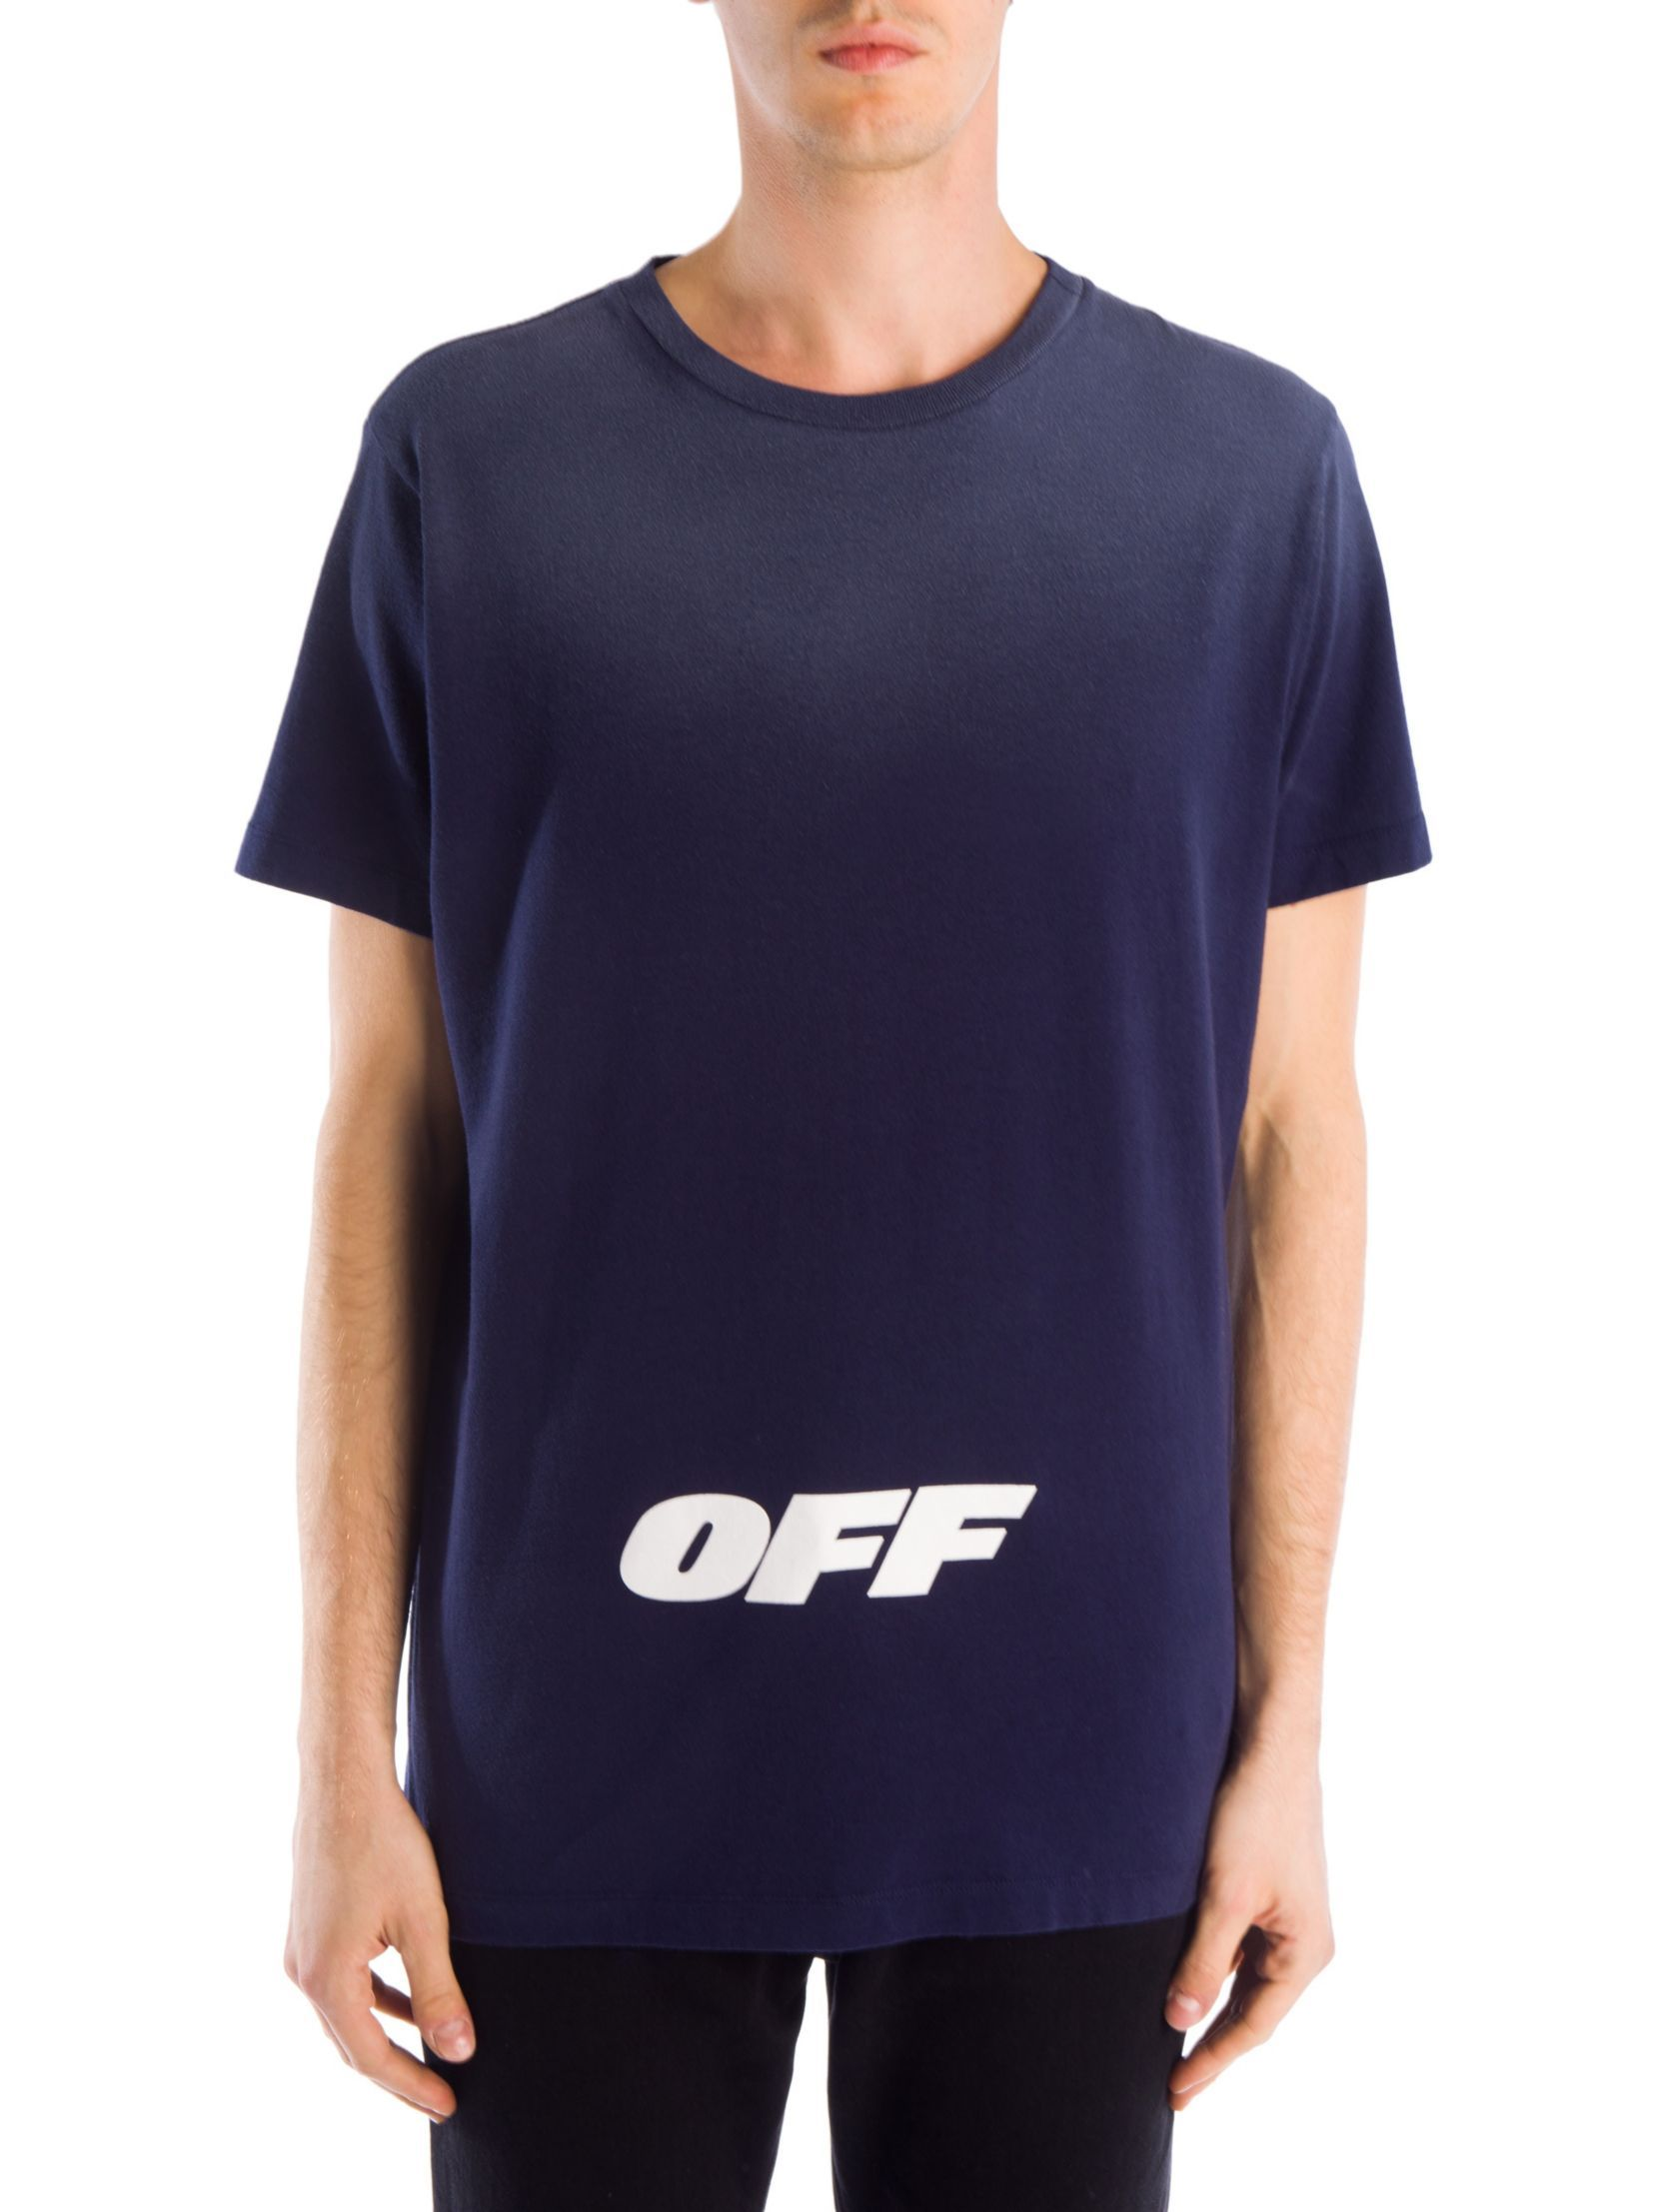 Off White Wing Off Short Sleeve Cotton Slim Tee Sleeve Cotton Mens Tops T Shirt